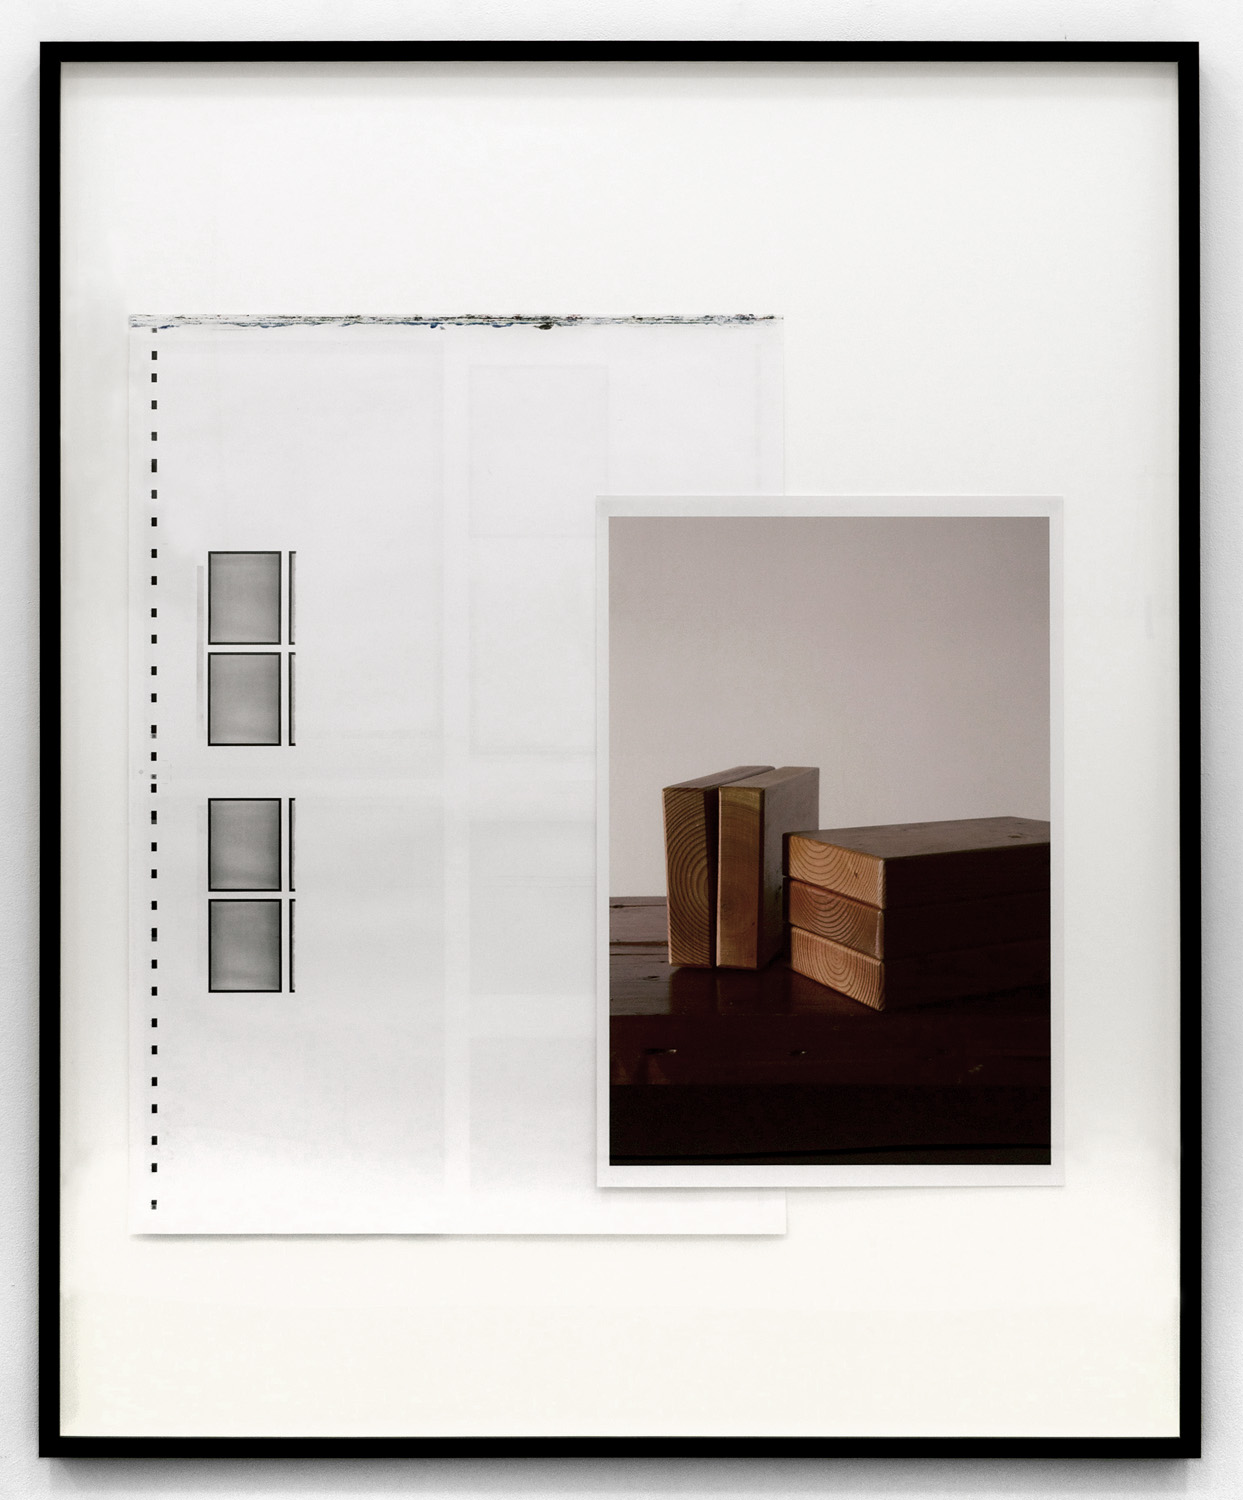 Running Sheet and Wood, 2012 offset and chromogenic prints 122 x 152,4 cm - 48 x 60 inches